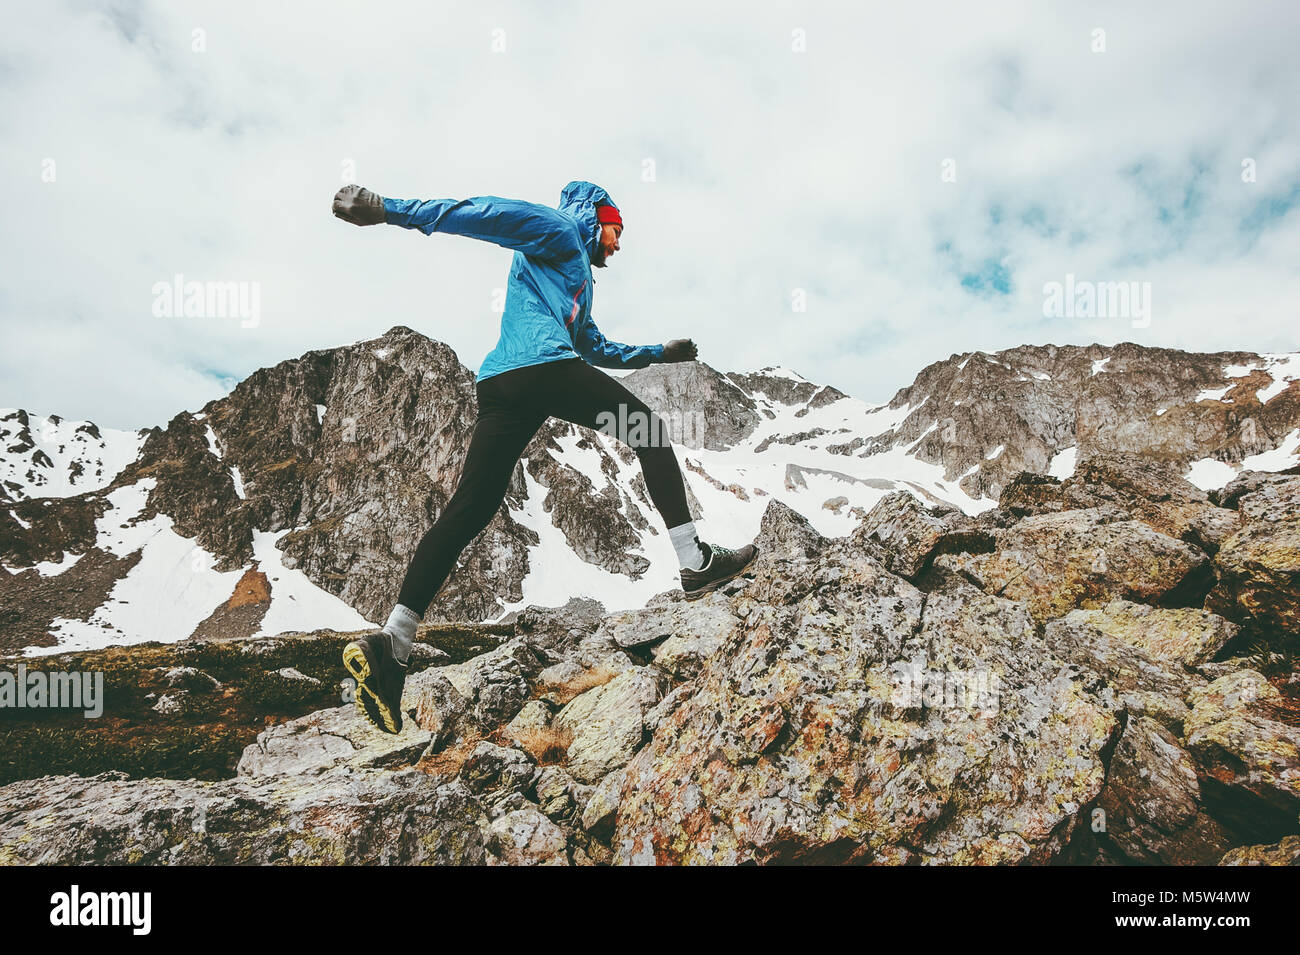 Running Man active vacations in mountains travel adventure healthy lifestyle endurance concept skyrunning sport - Stock Image